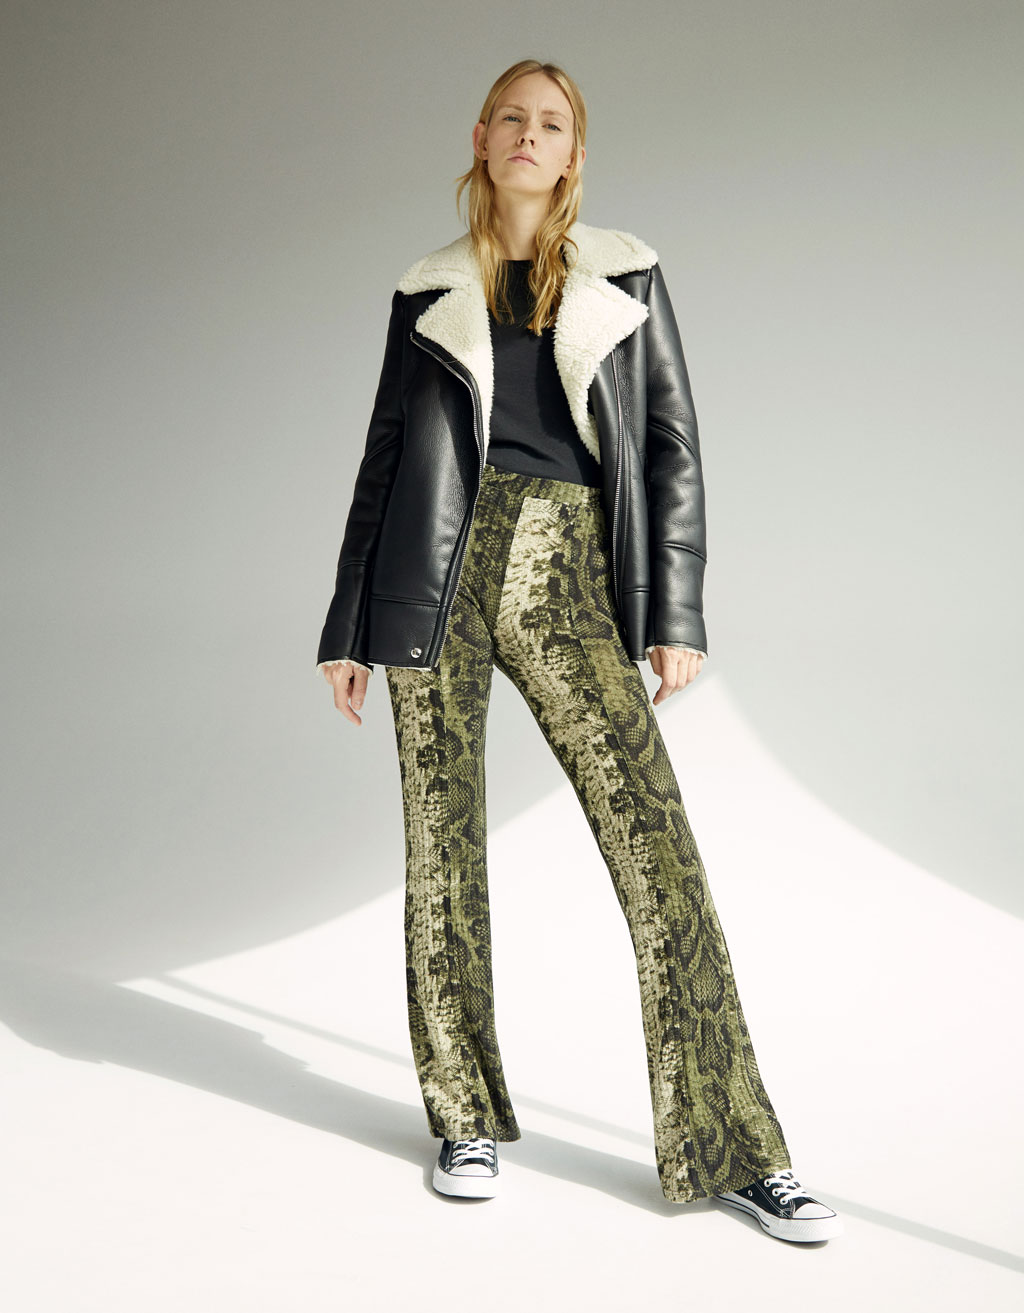 Snakeskin print flared pants